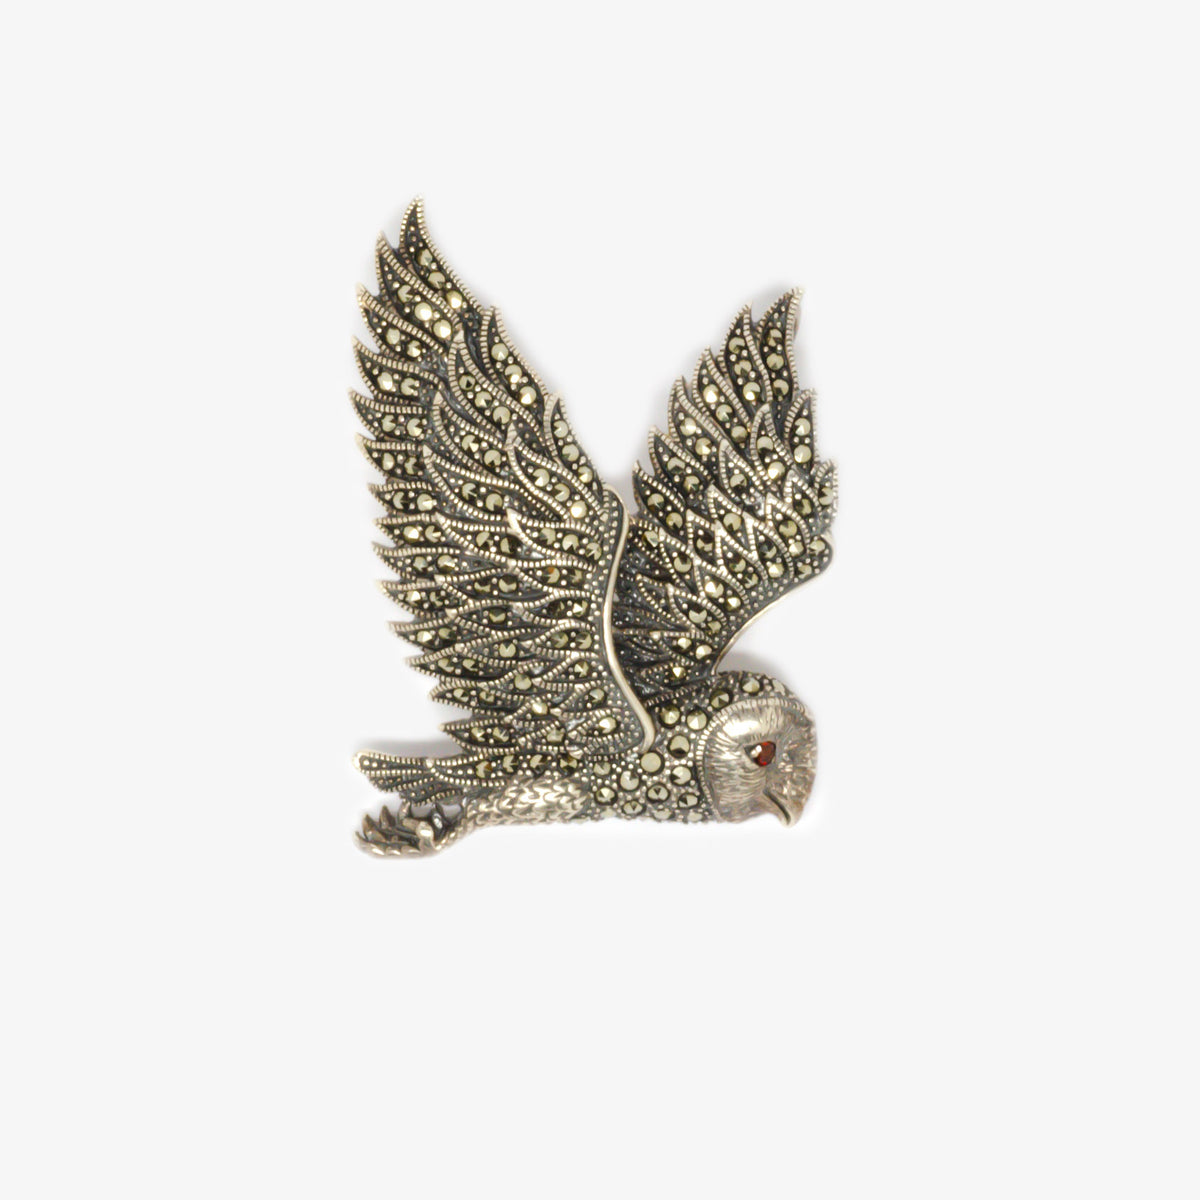 Jordans Jewellers silver marcasite owl brooch pendant - Alternate shot 1